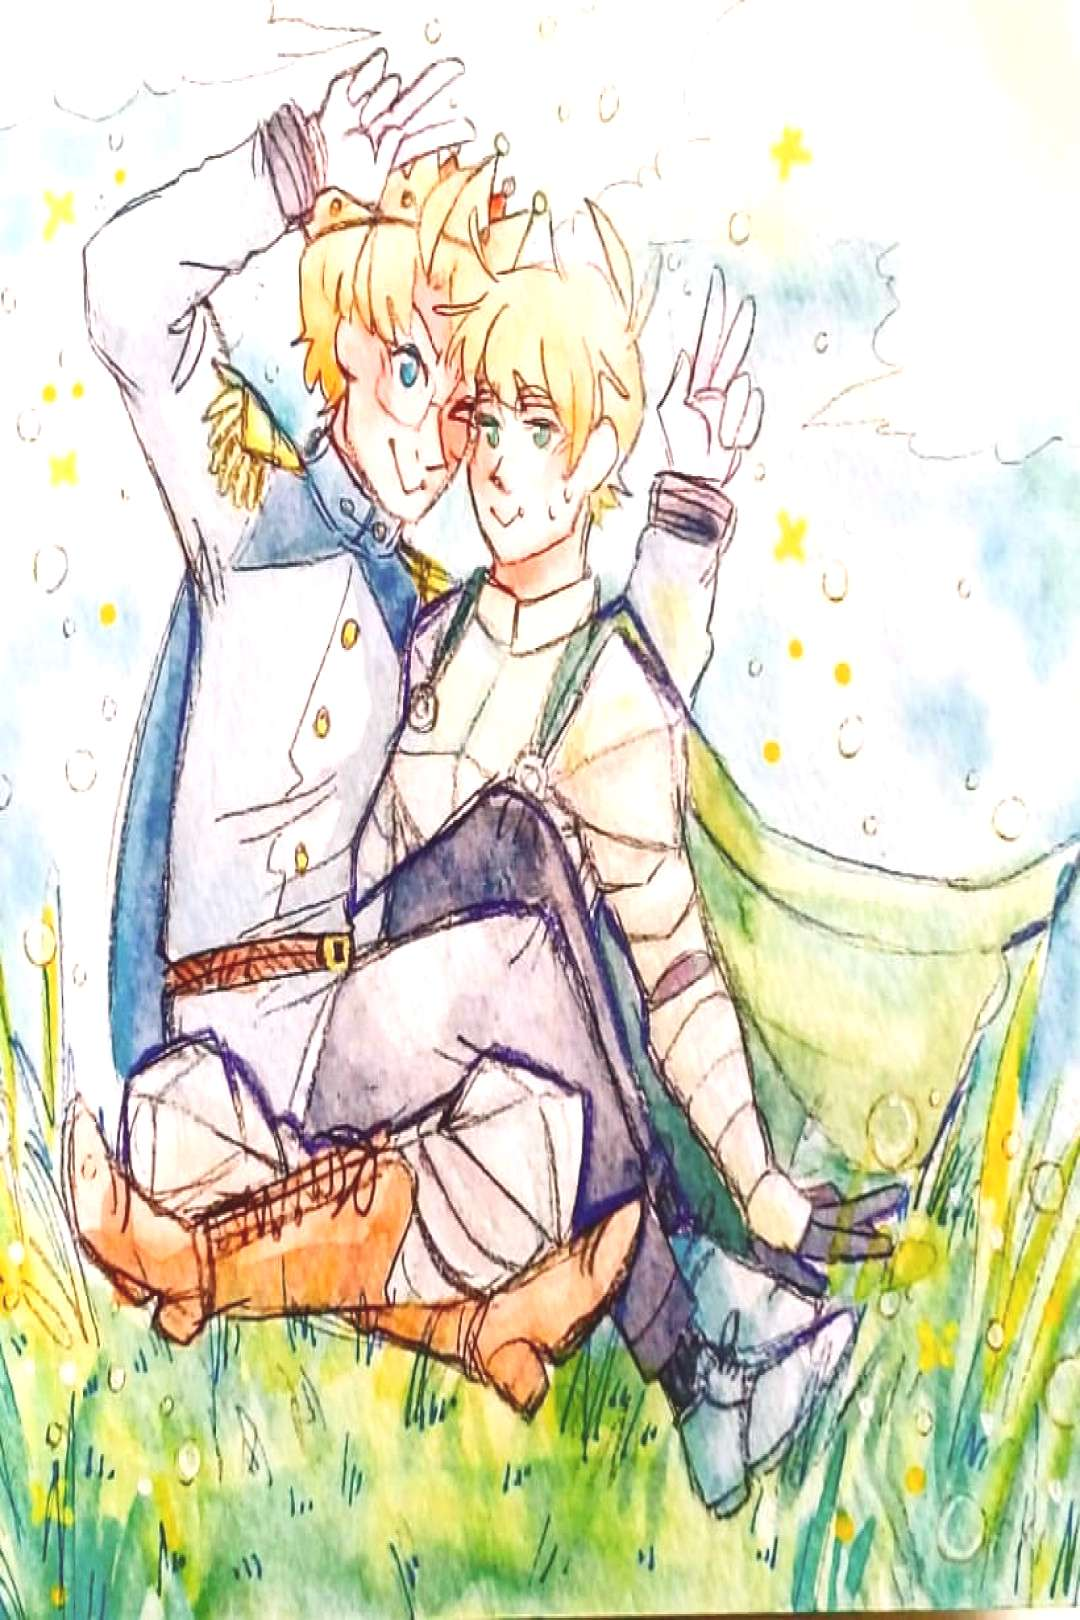 I want a tournament arc but it's just jousting?? Jousting looks r